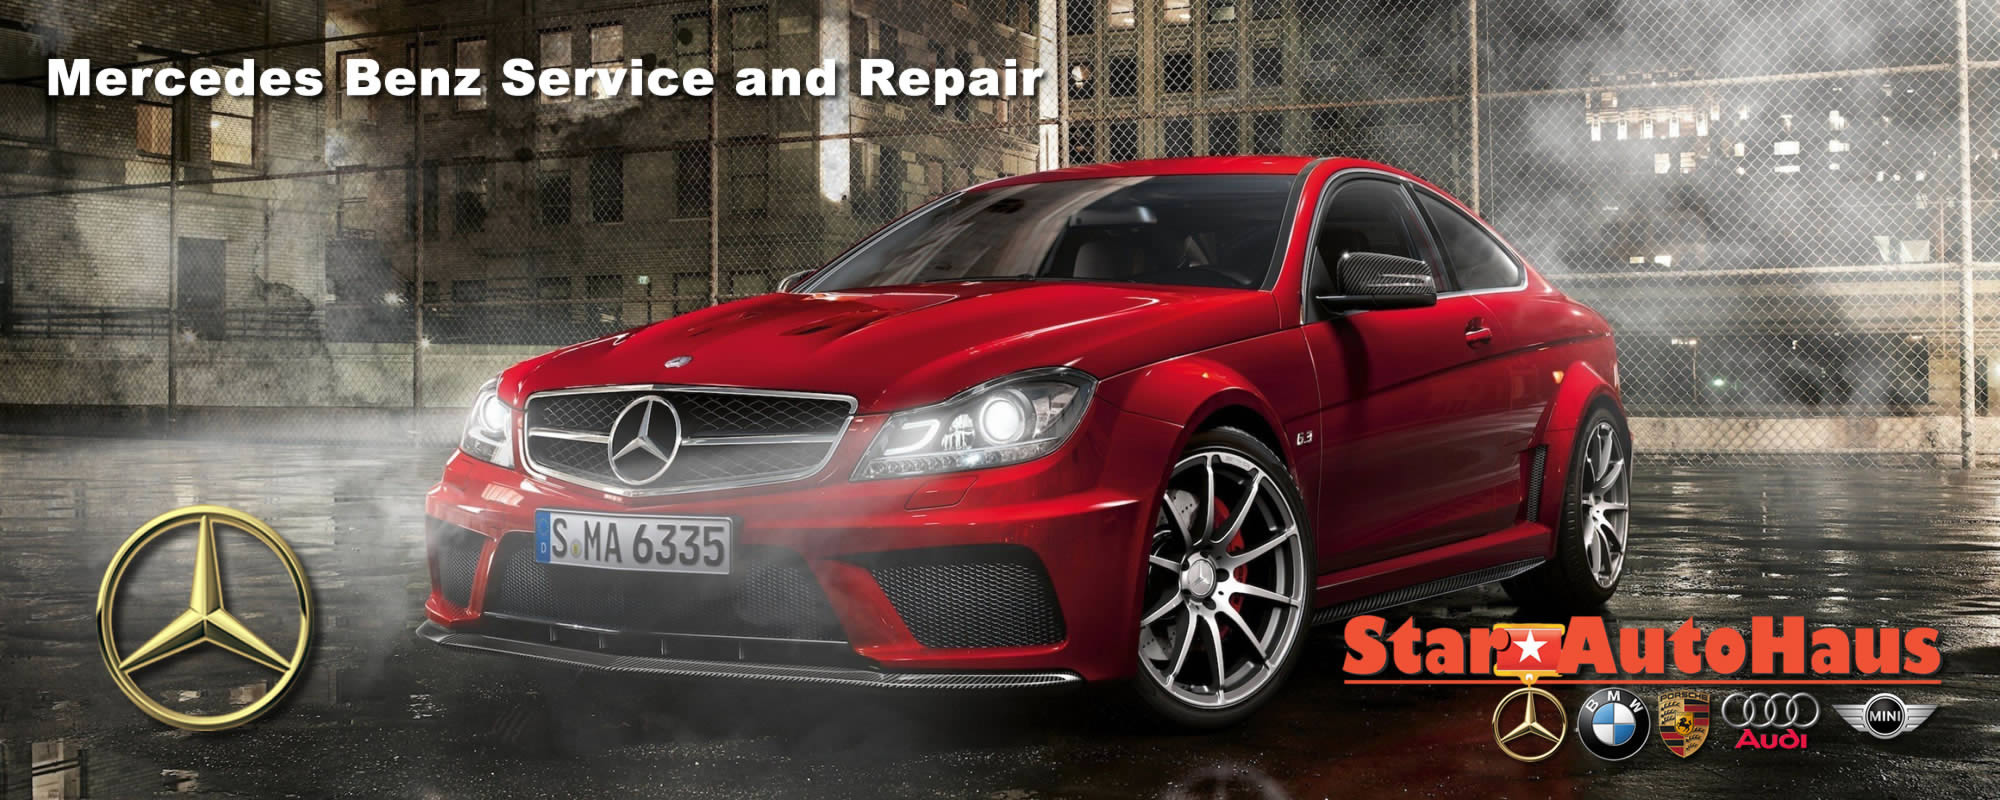 Mercedes Benz Service and Repair